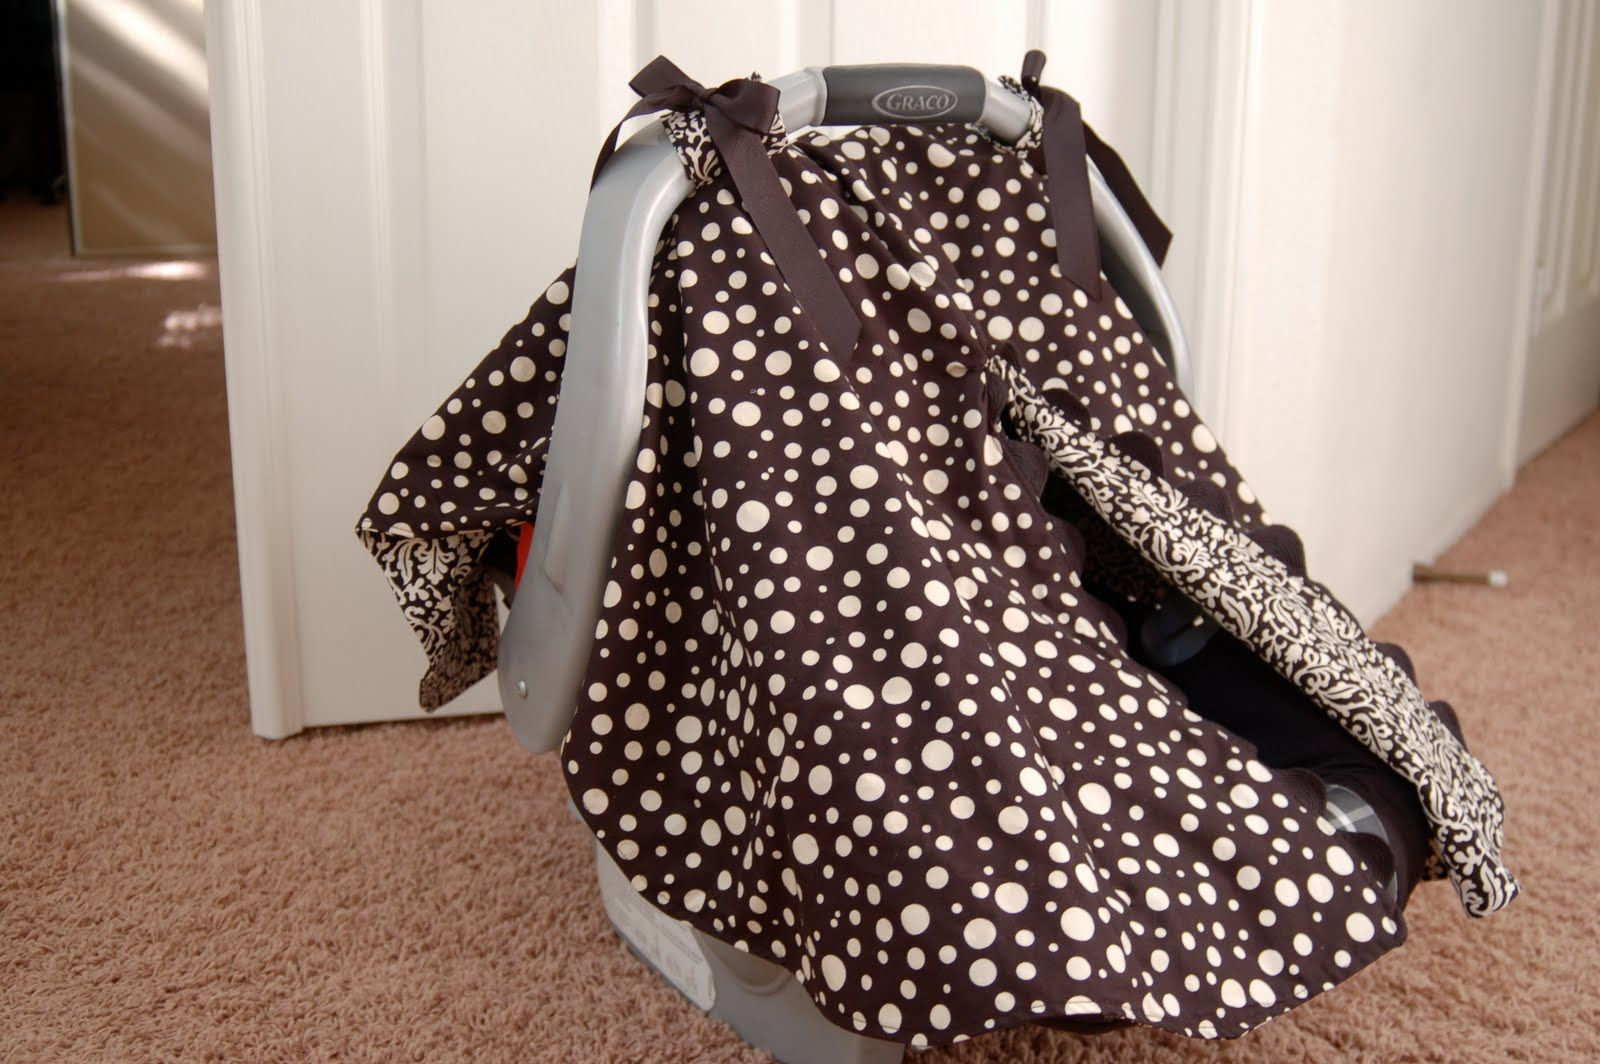 car seat cover pattern | crafts to give as gifts | Pinterest | Nähen